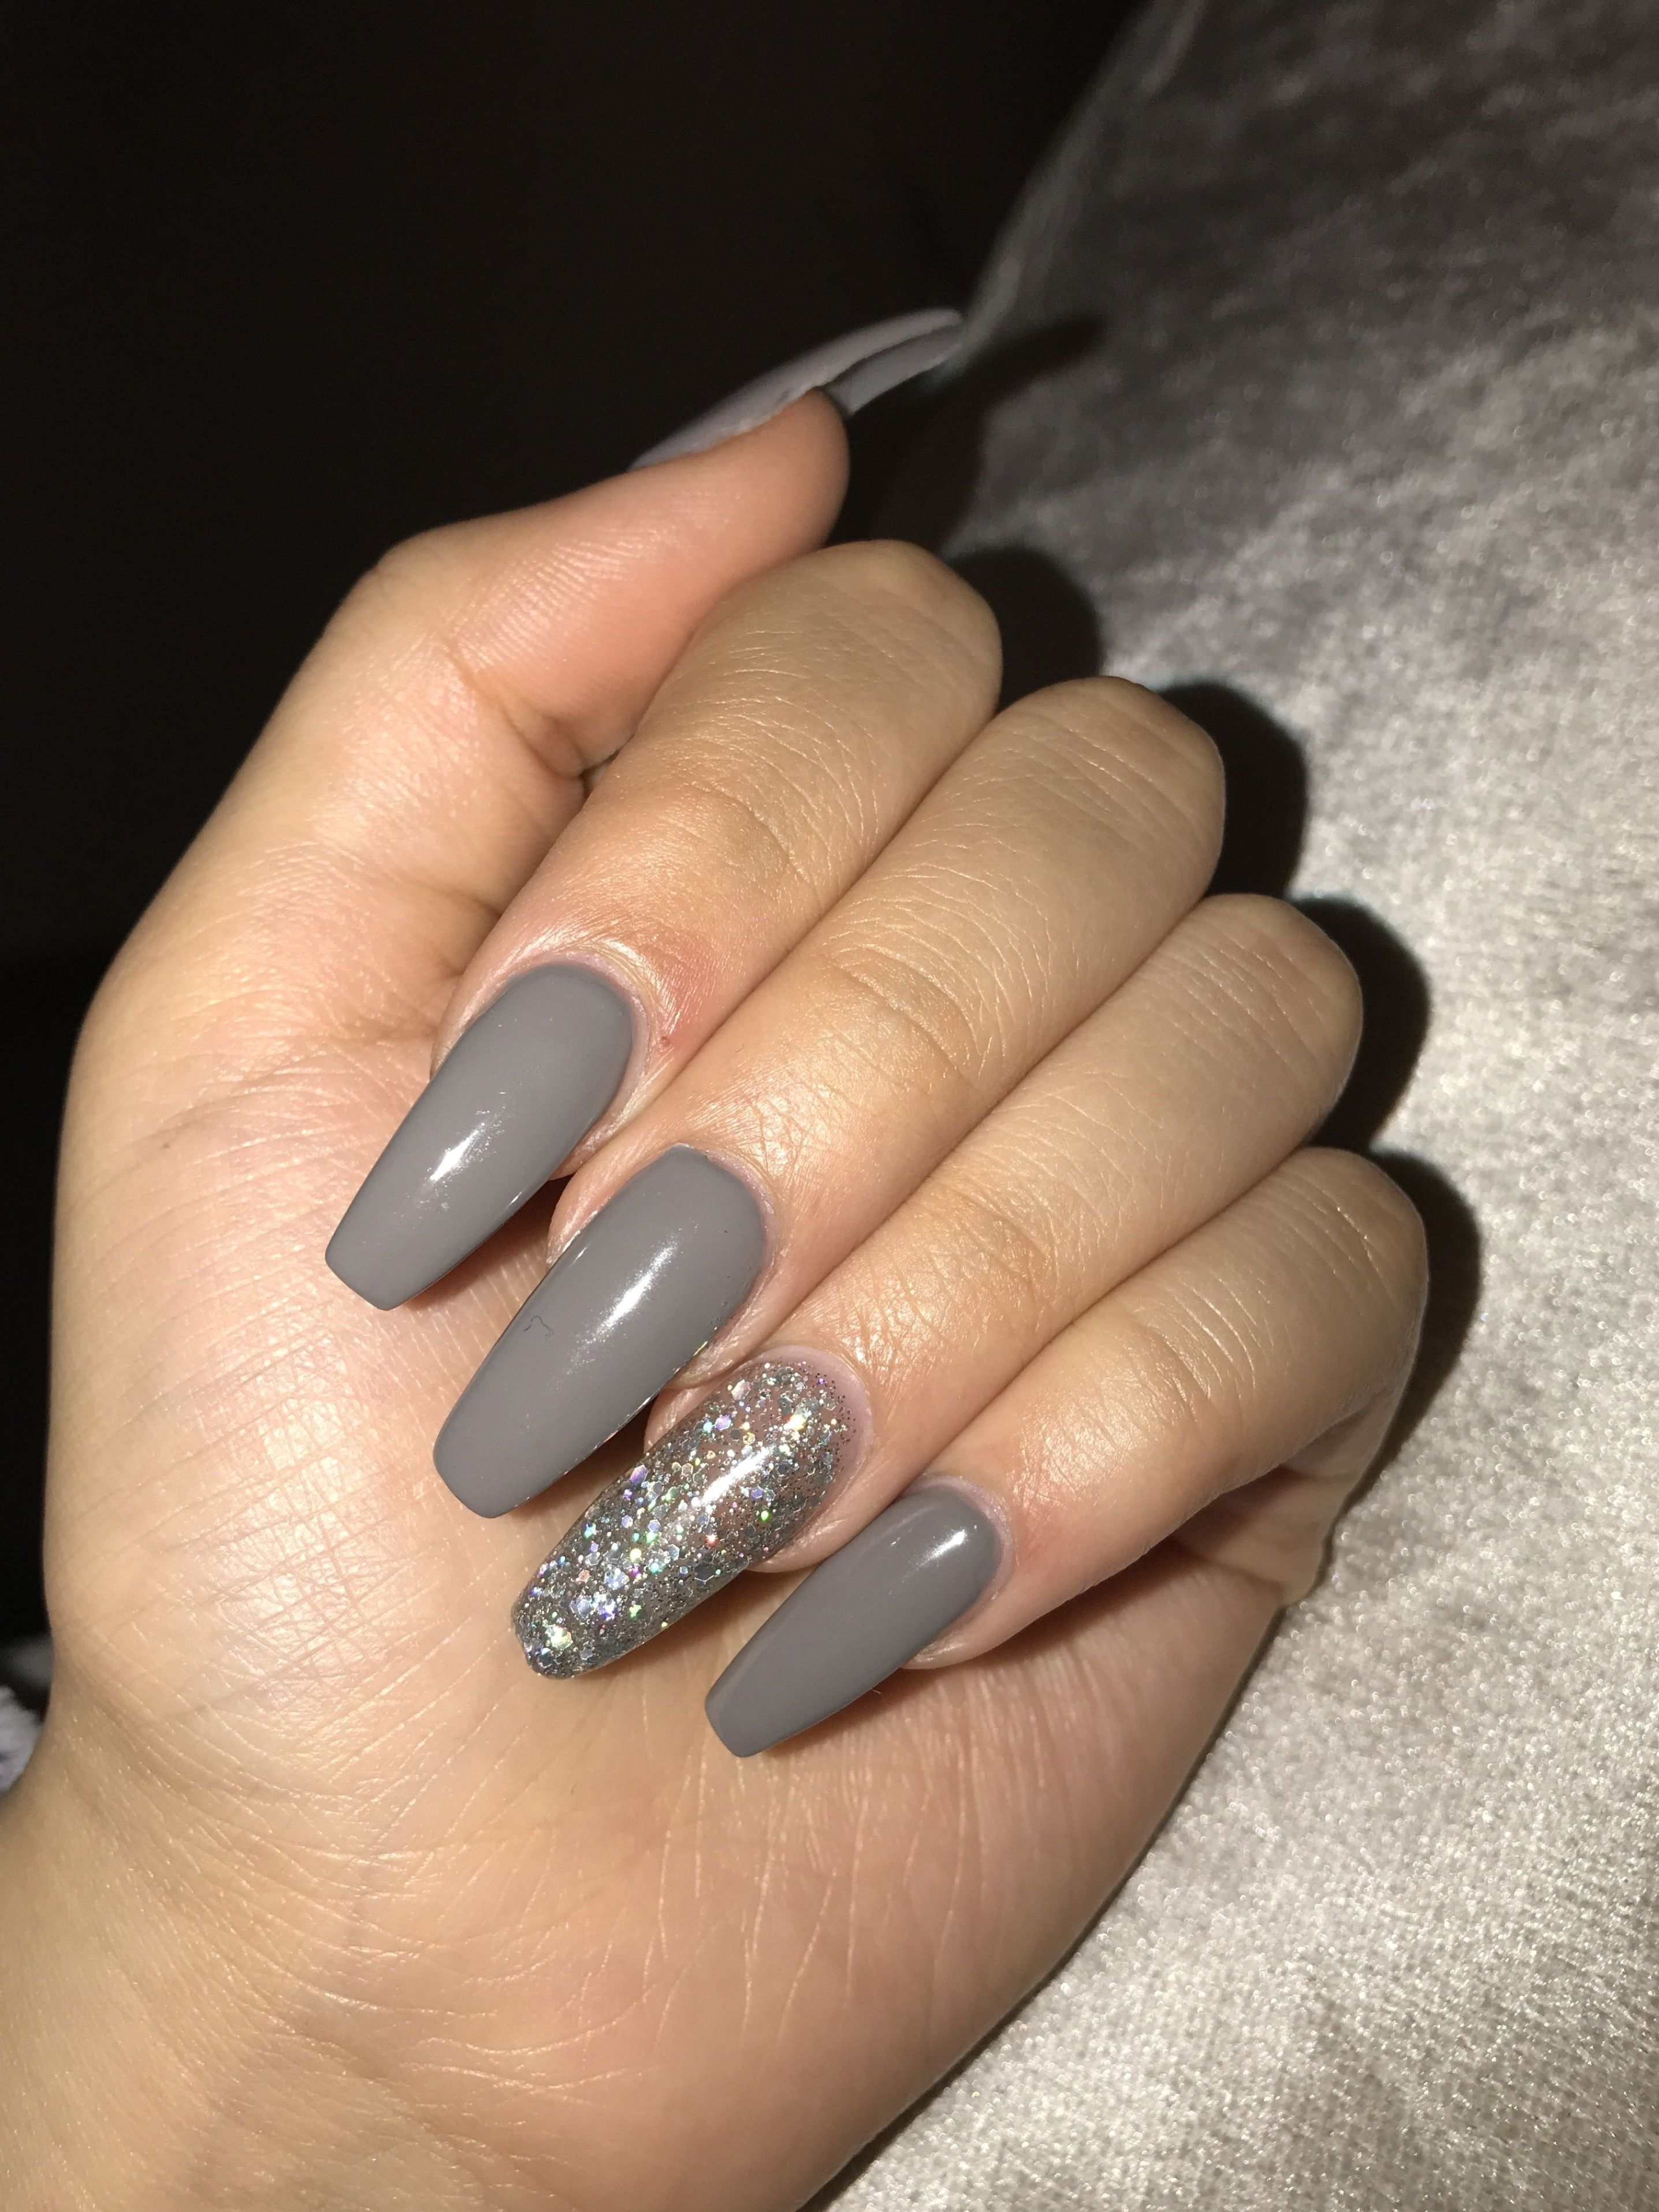 35 Trending Fall Nail Colors Of 2020 You Have To Try Out Beauty Home In 2021 Grey Acrylic Nails Short Acrylic Nails Prom Nails Silver